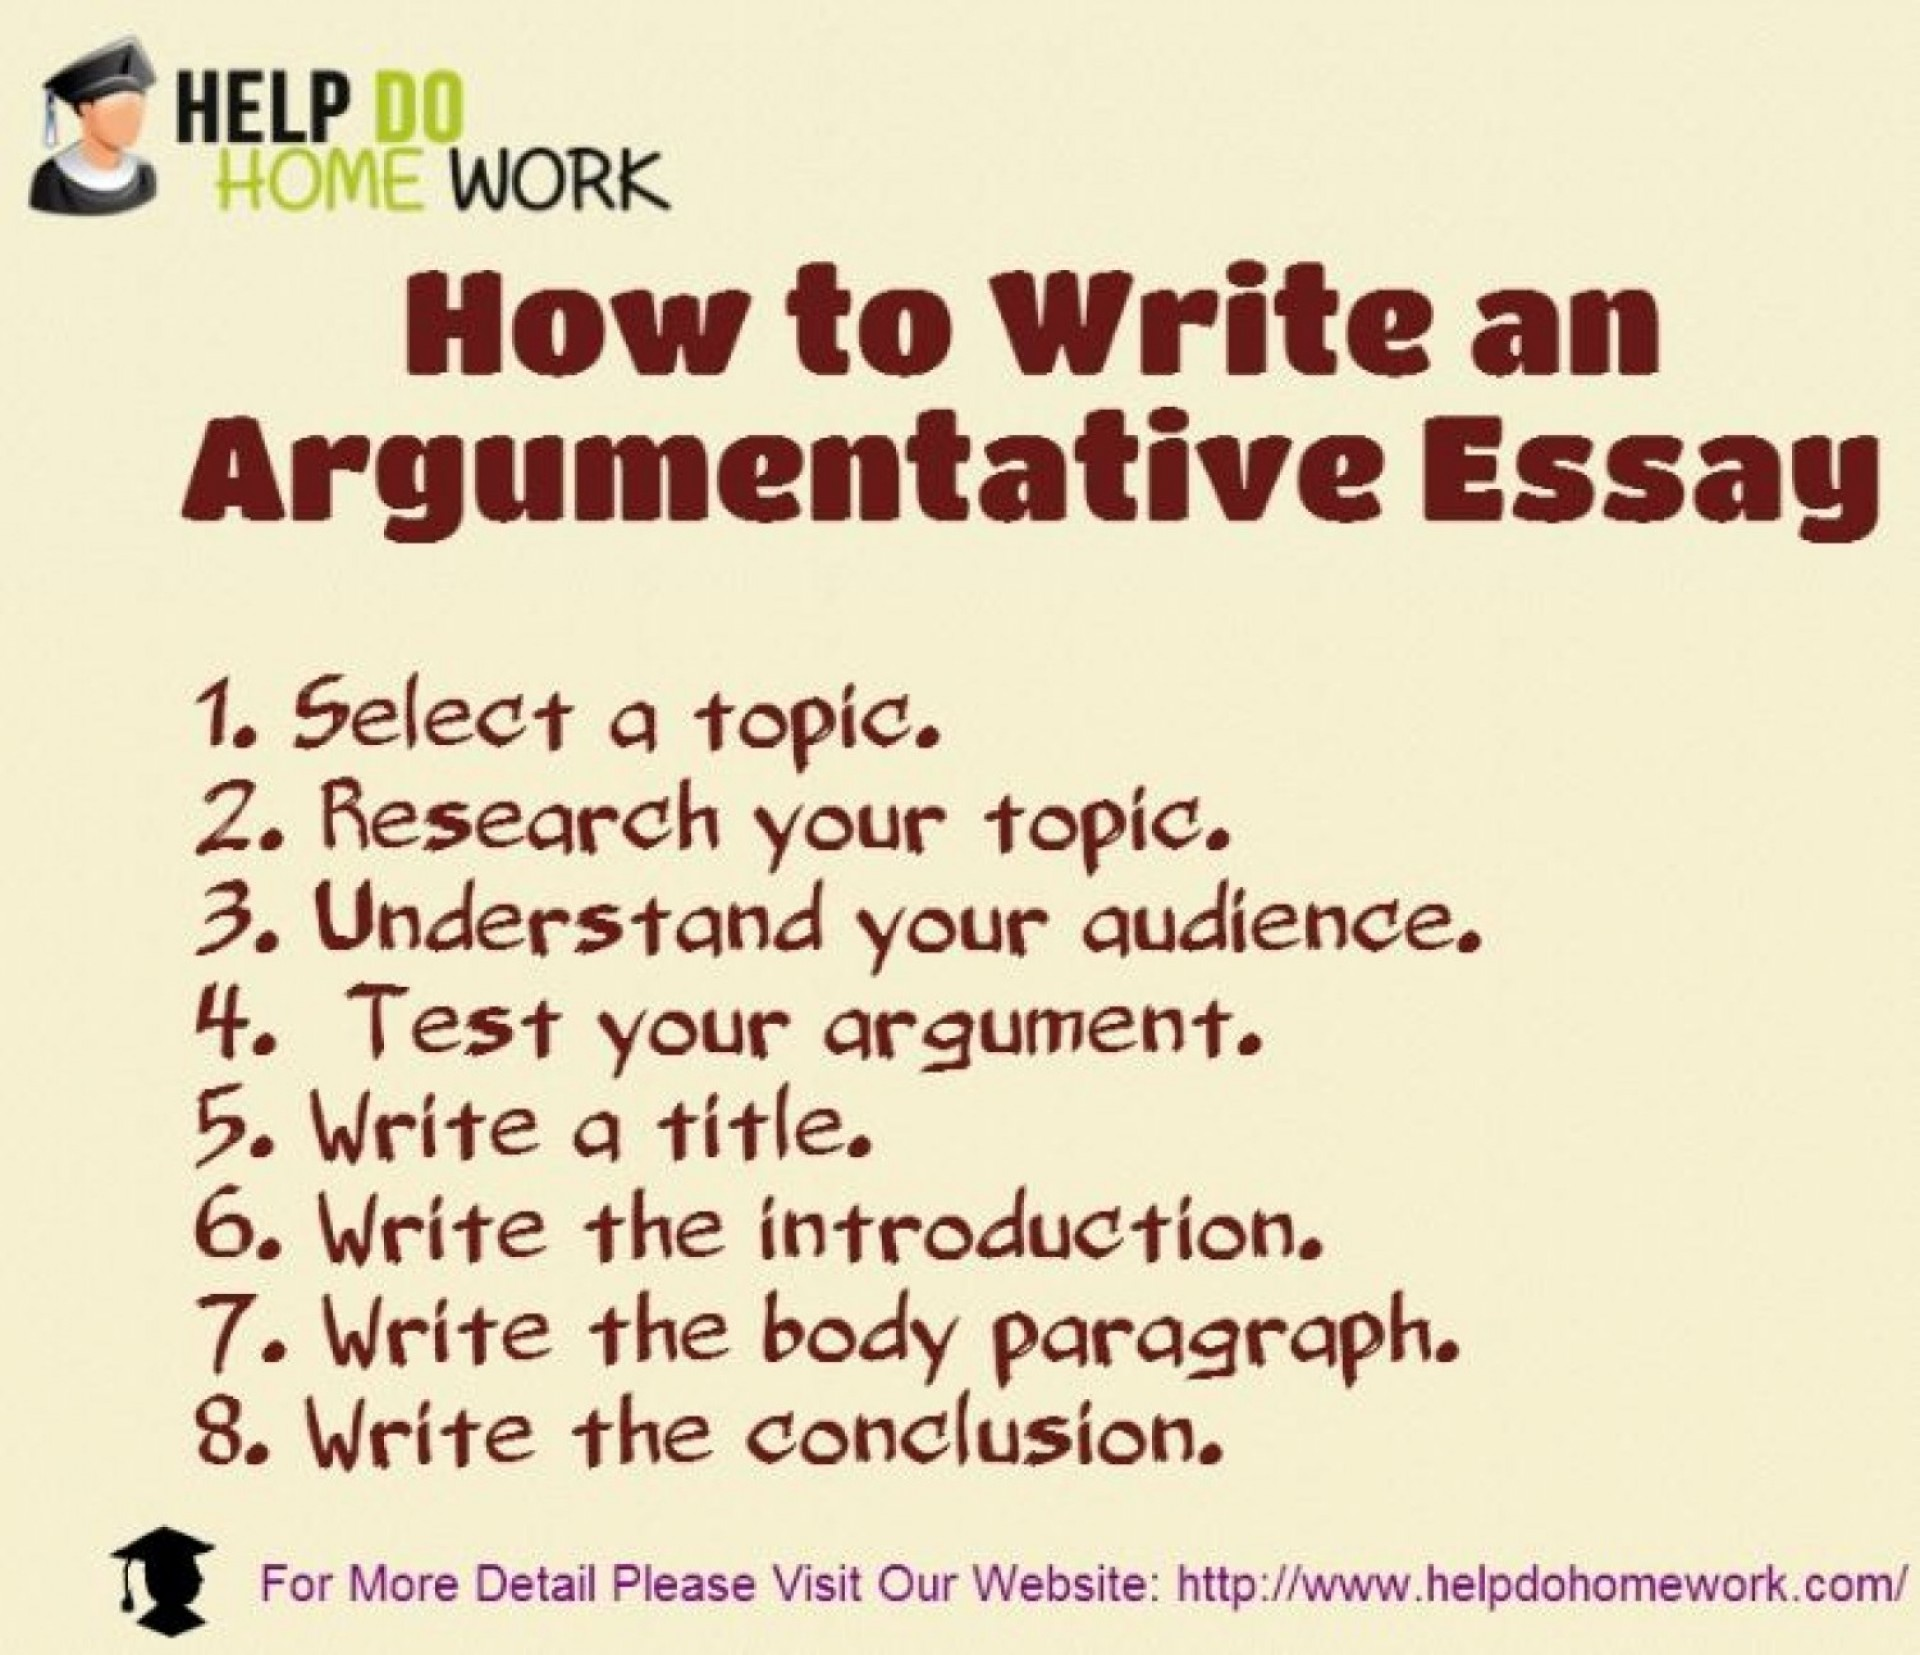 011 Utilize Functional And Utilitarian Approach For Your Academic Work 53b0d9bea1f6e W1500 Jpg Essay Example Write An Surprising Argumentative Sample In Which You State Defend 1920